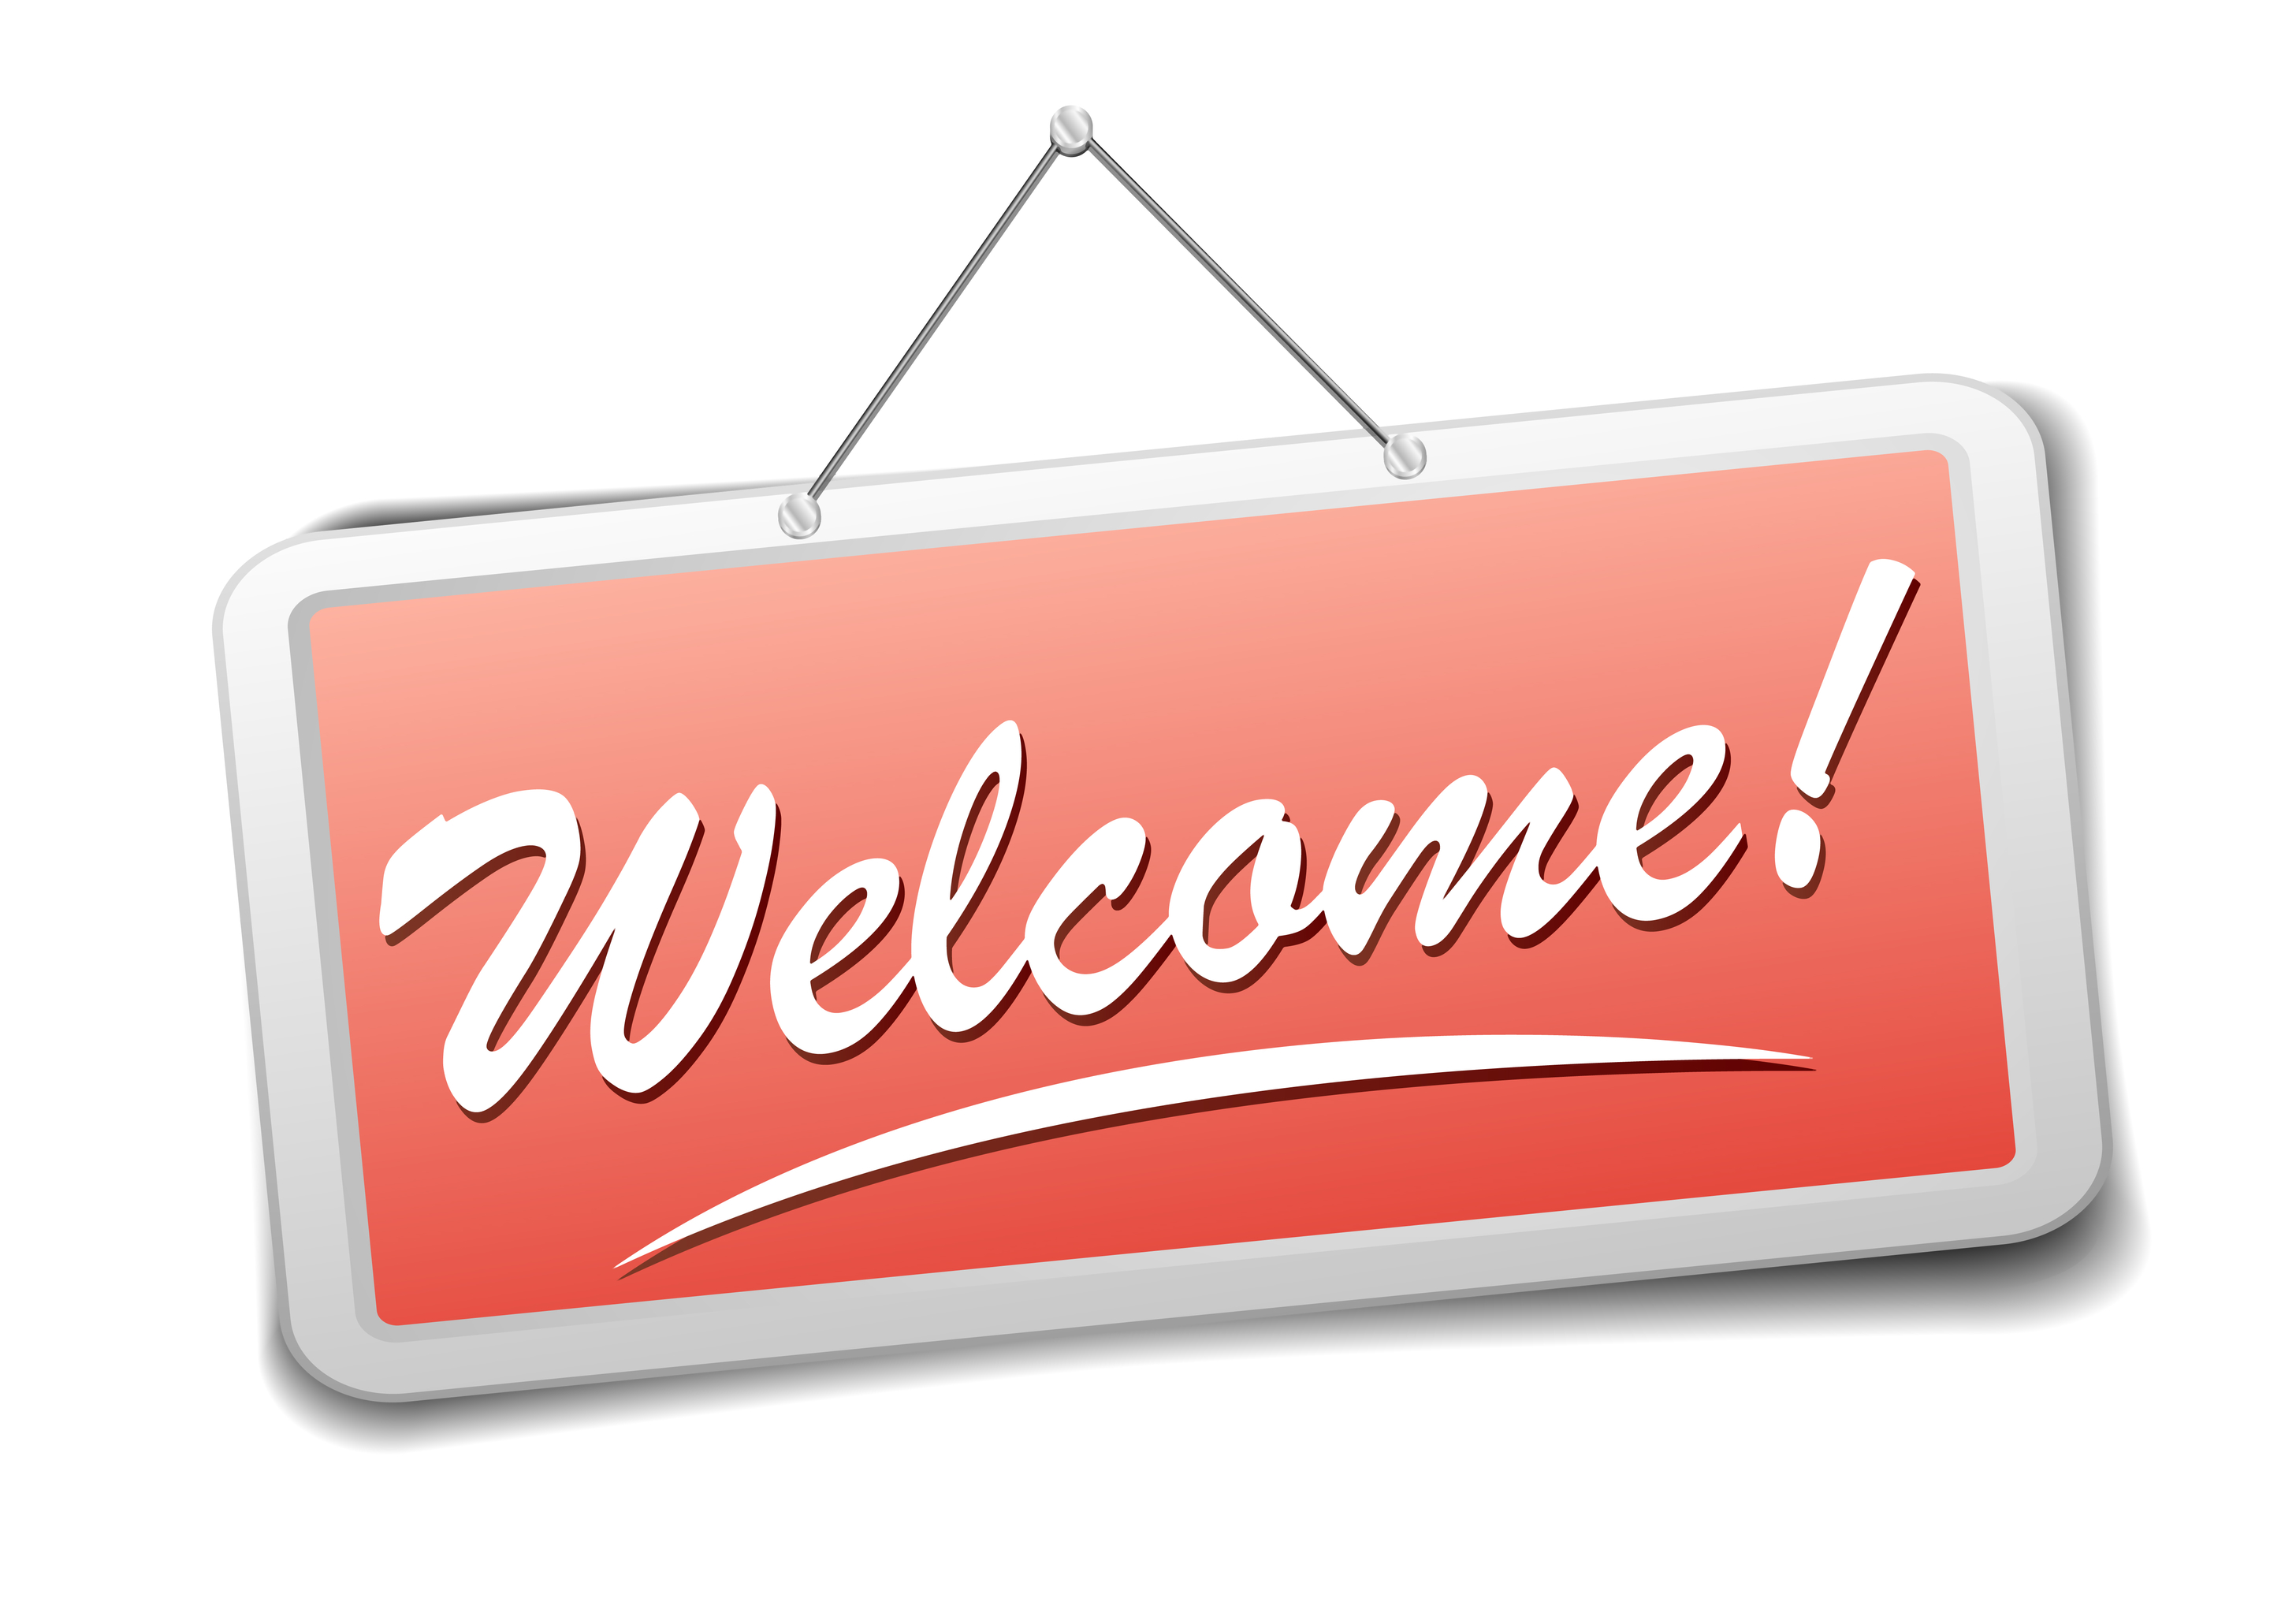 detailed illustration of a red welcome sign, eps10 vector